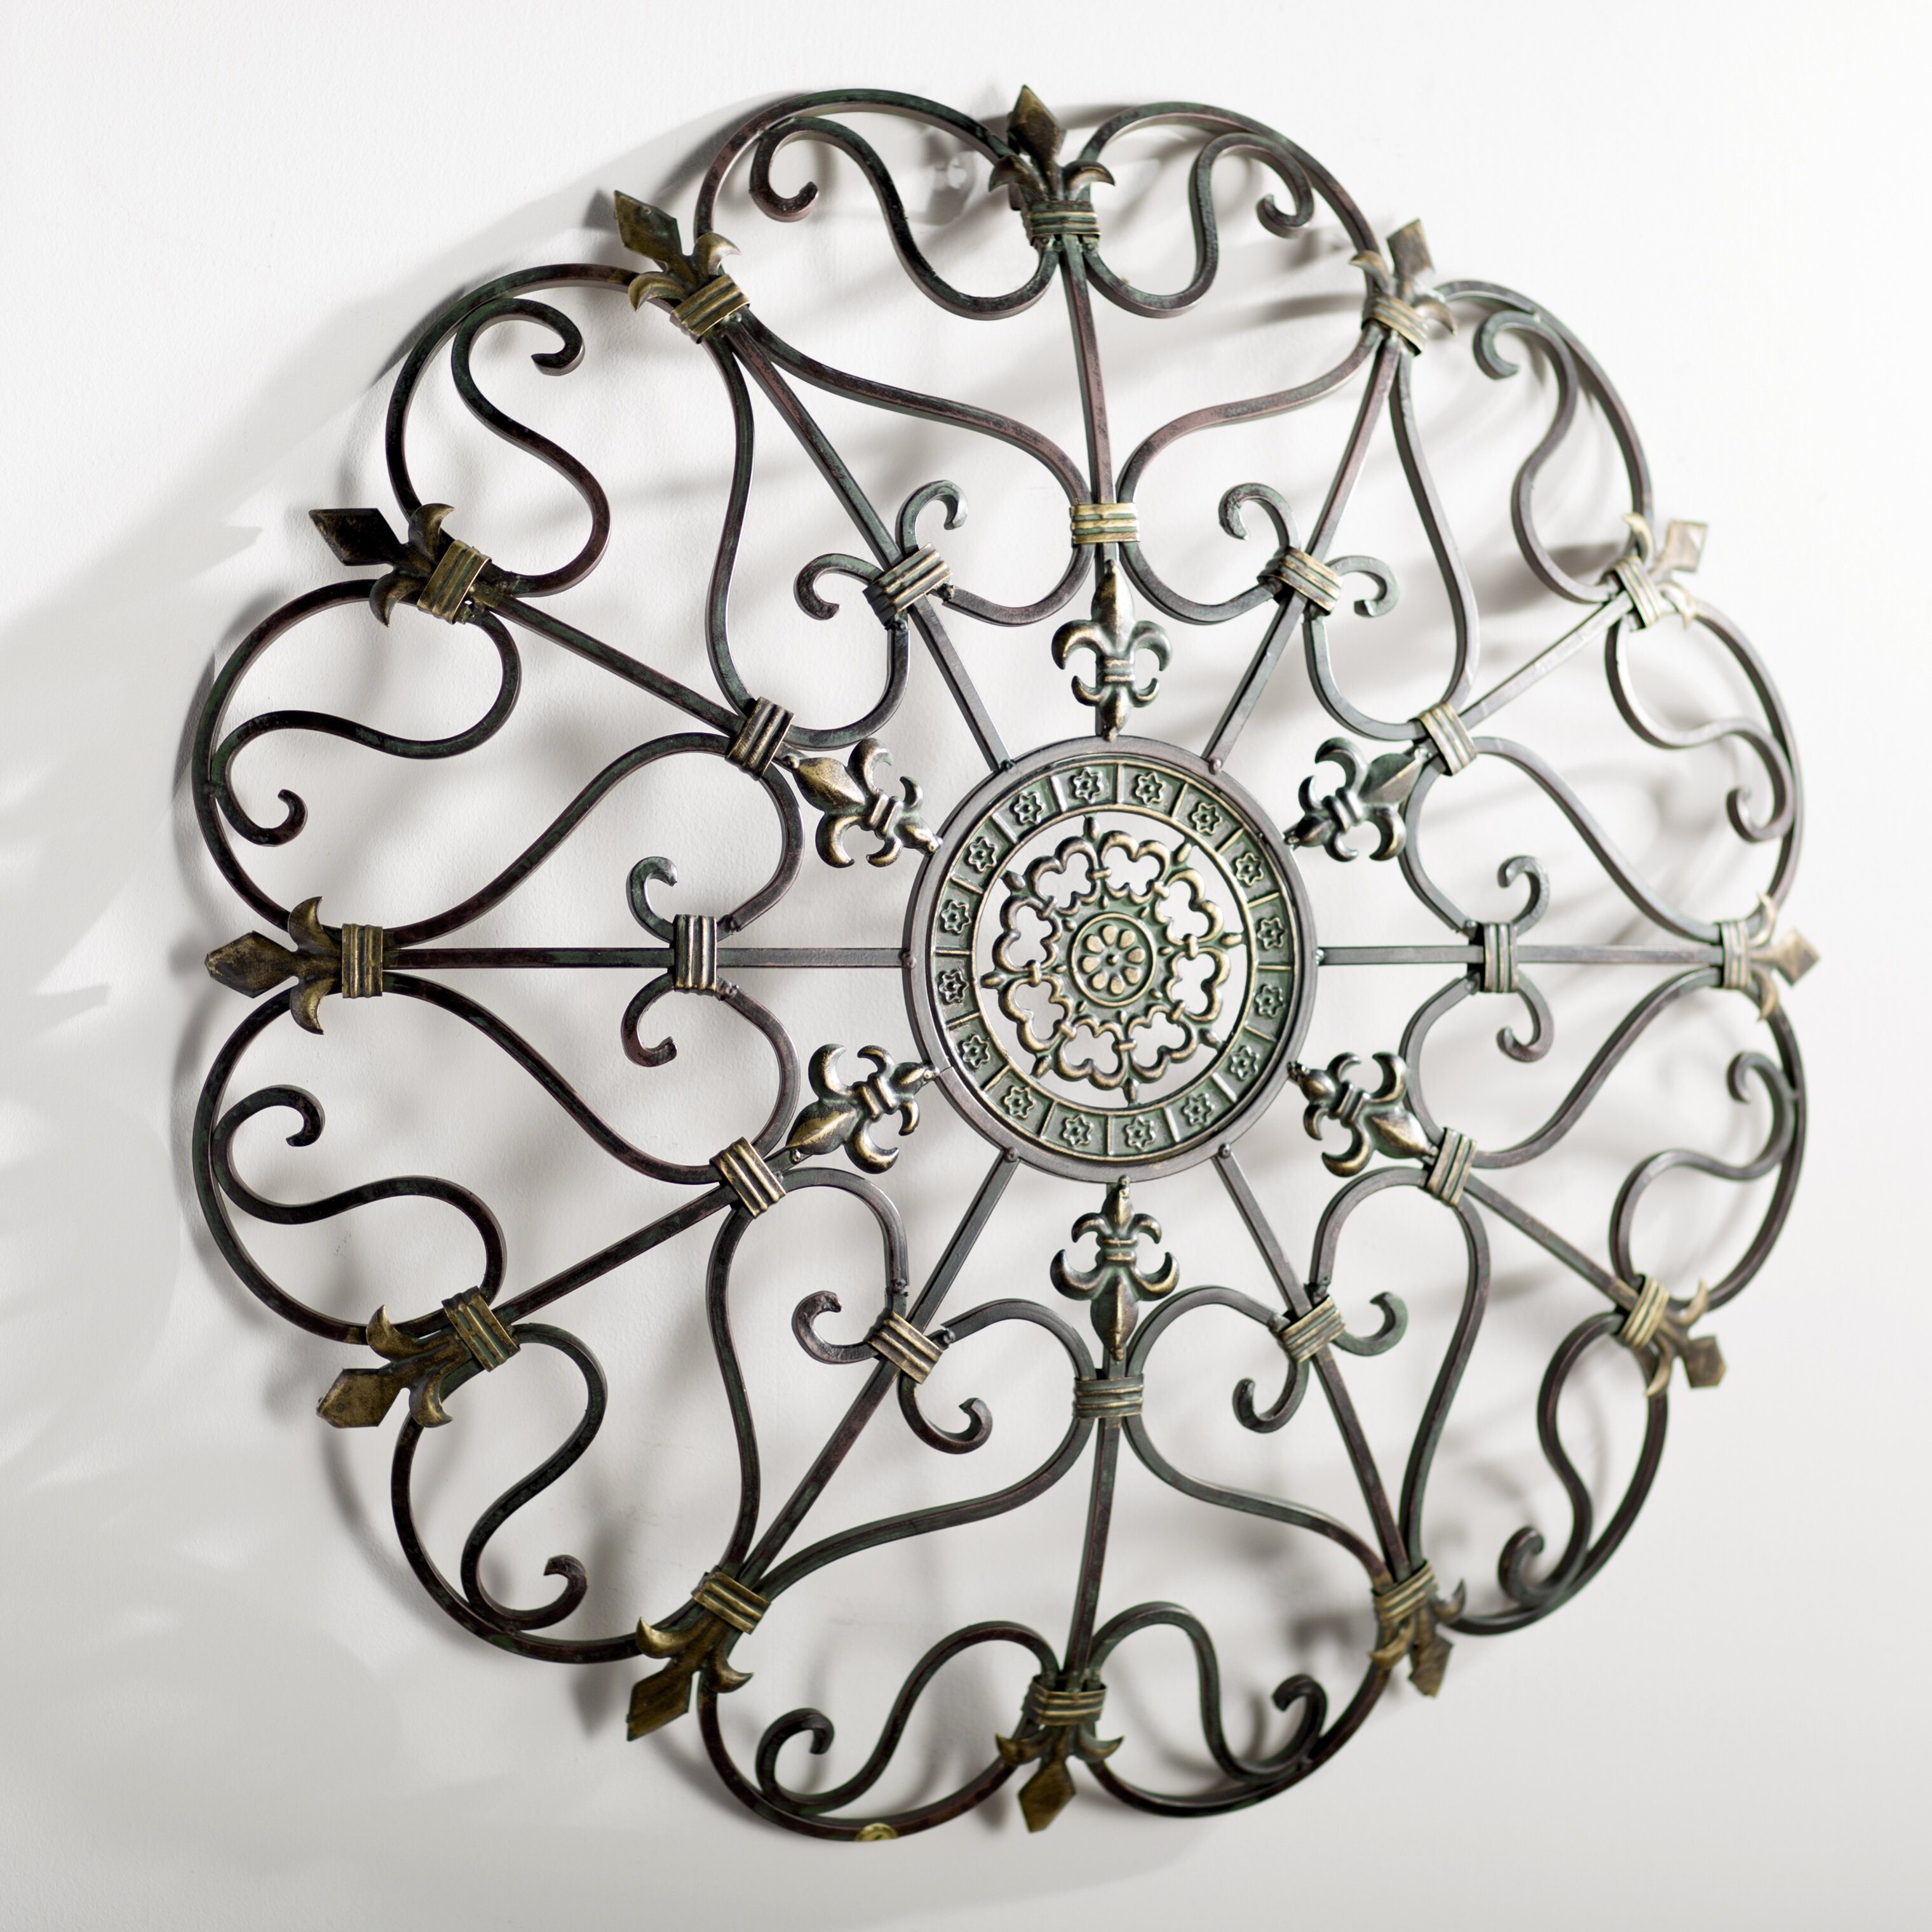 metal neutral hands pin abstract decor in circles tones three circle color wall